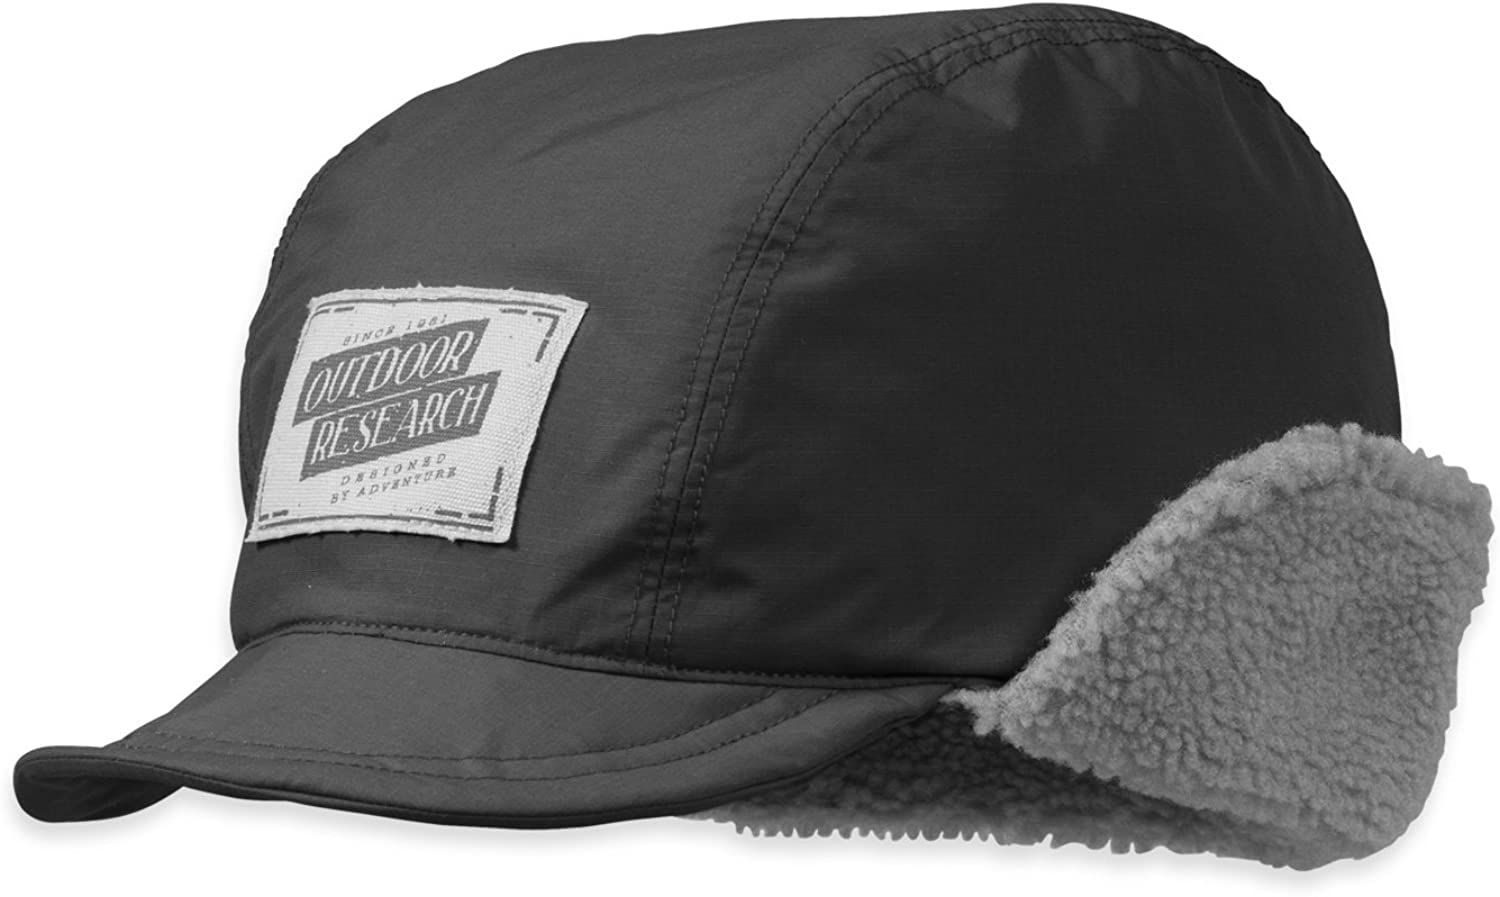 Outdoor Research Saint Hat Max Very popular! 72% OFF